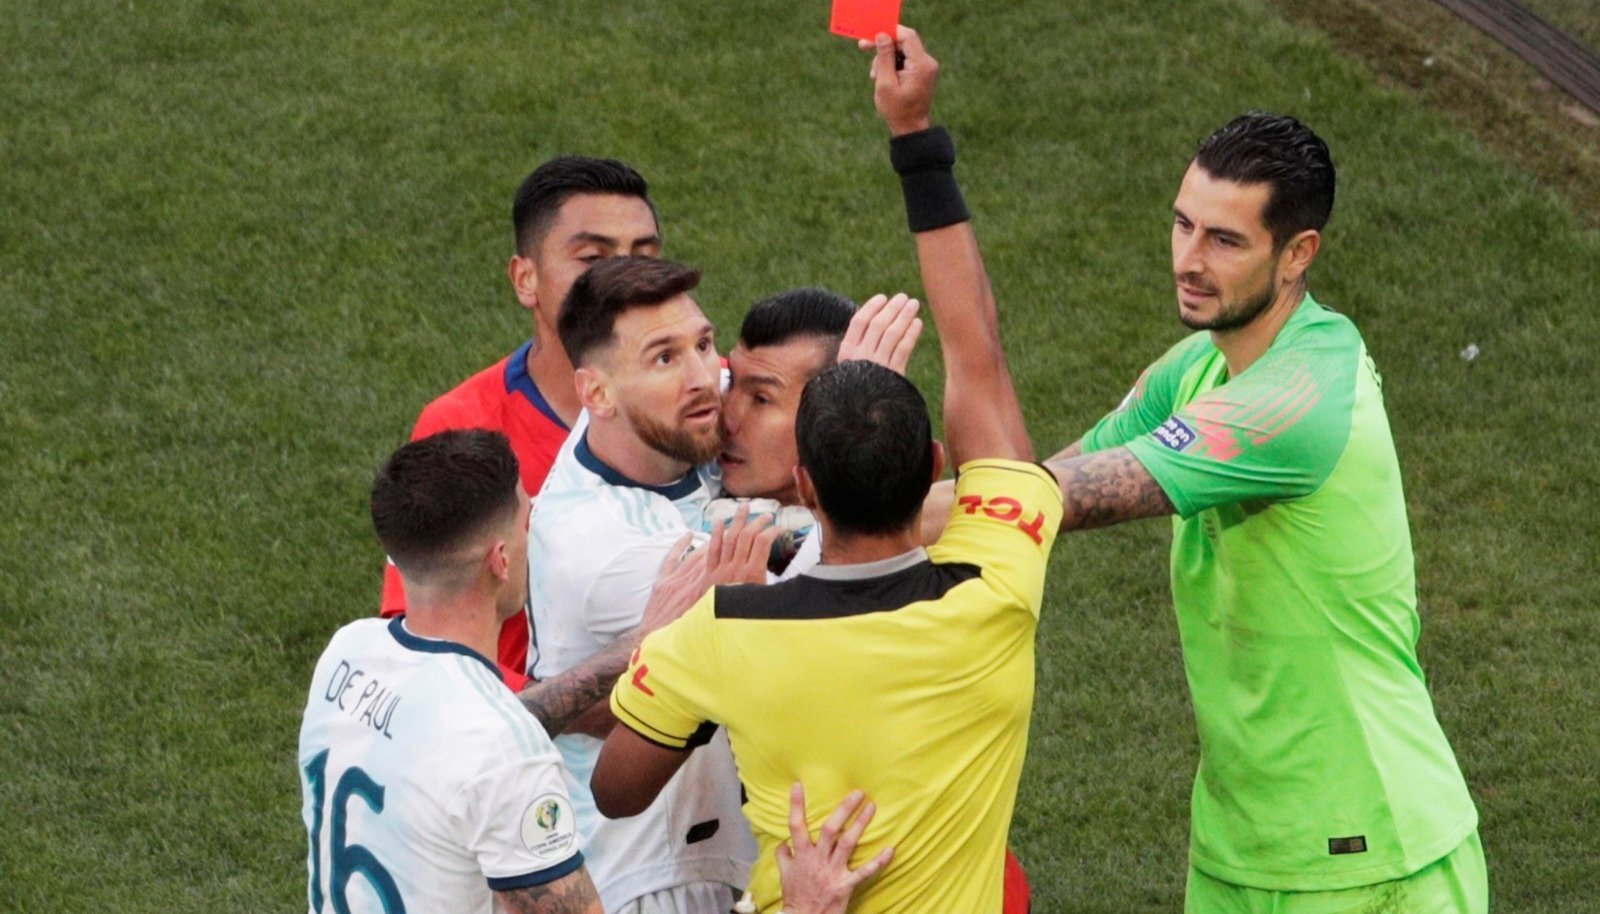 Copa America Brazil 2019 - Third Place Play Off - Argentina v Chile